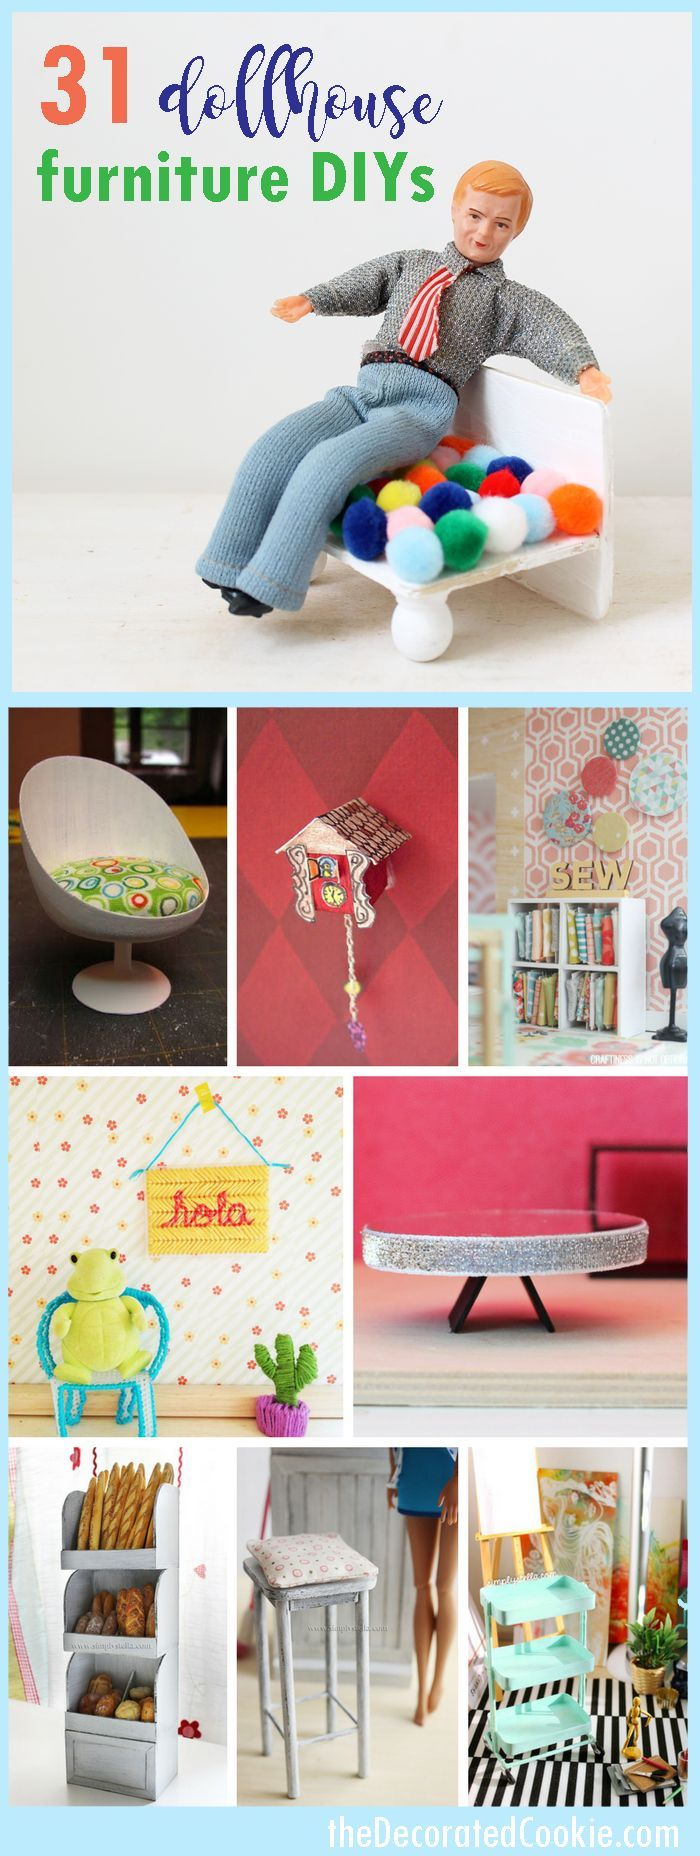 Doll house furniture ideas: A roundup of DIY doll house furniture tutorials. #barbiefurniture